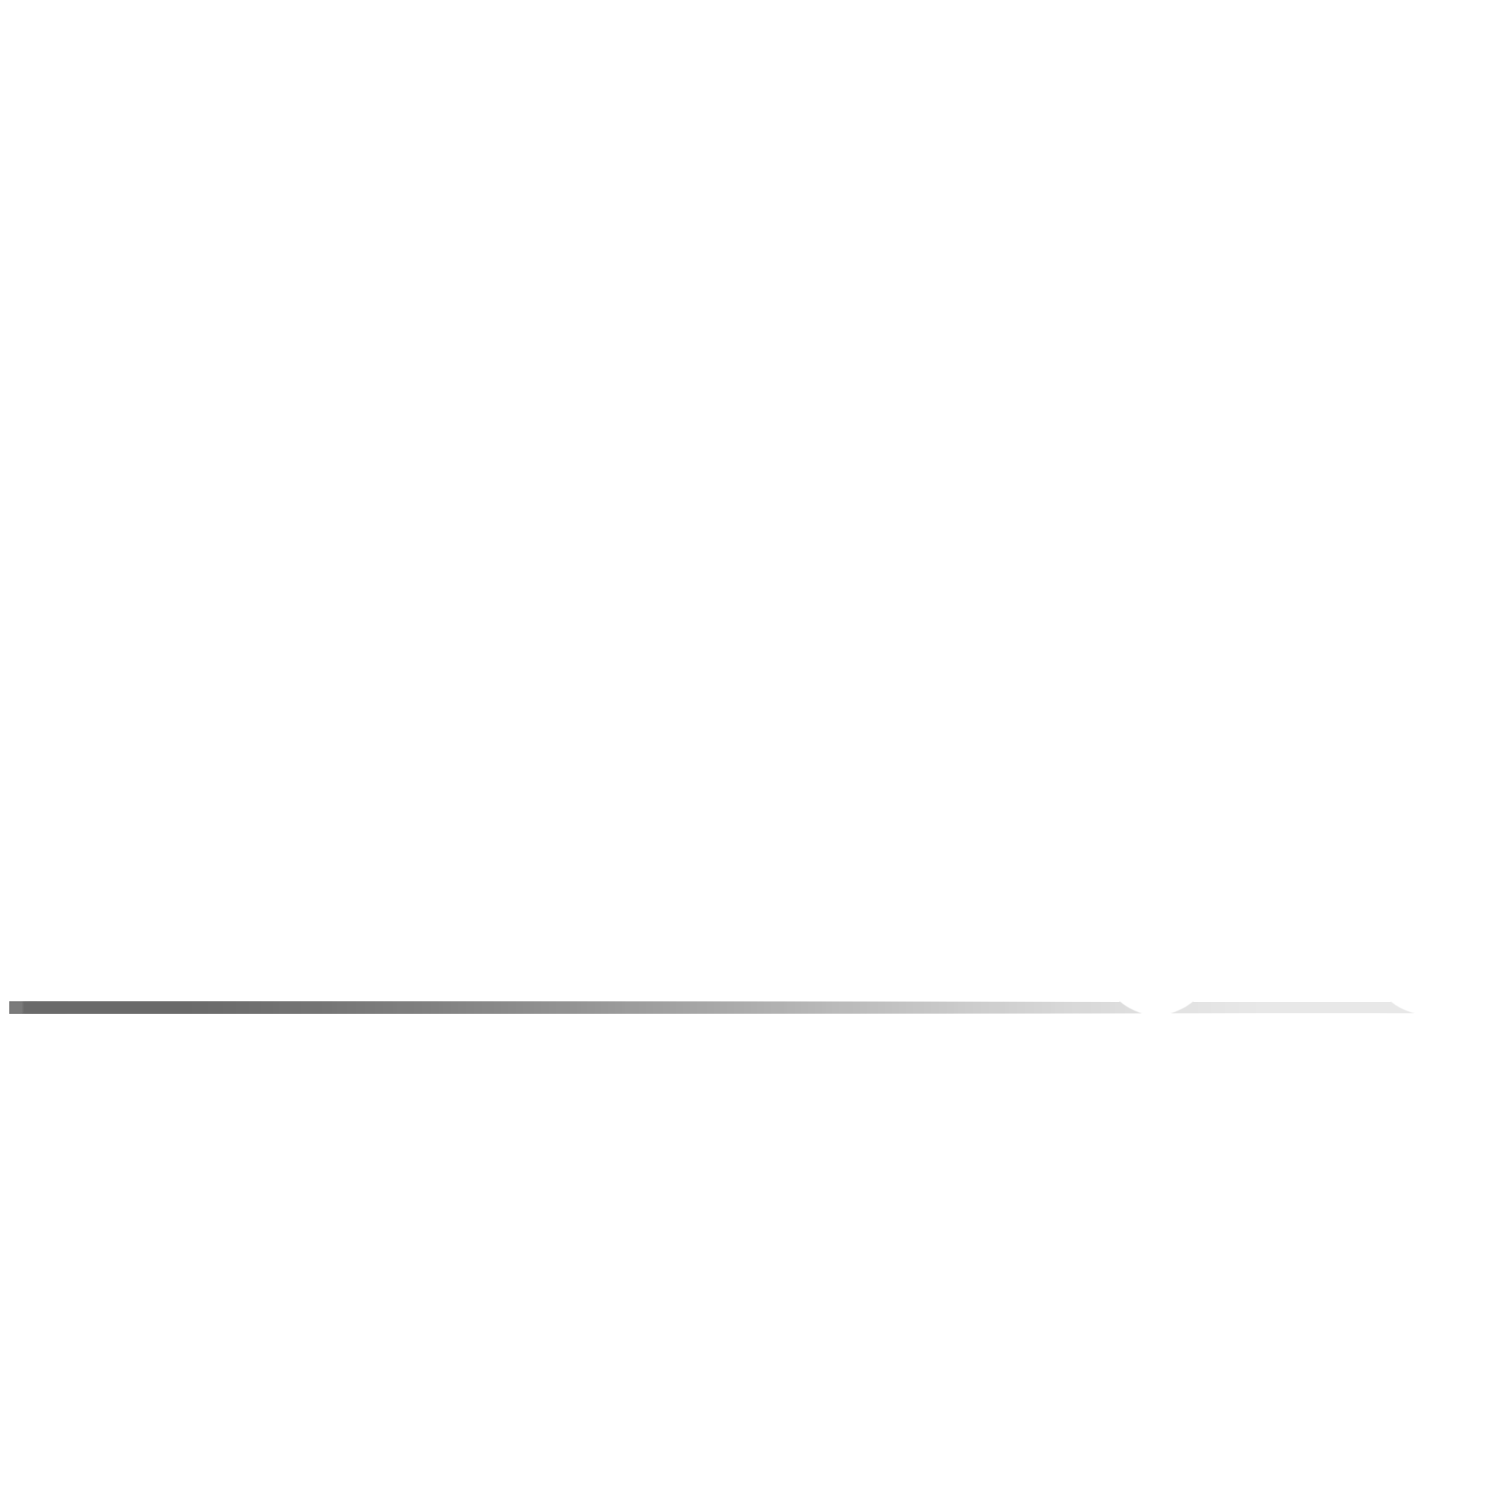 Trevor Hall Motorcycles